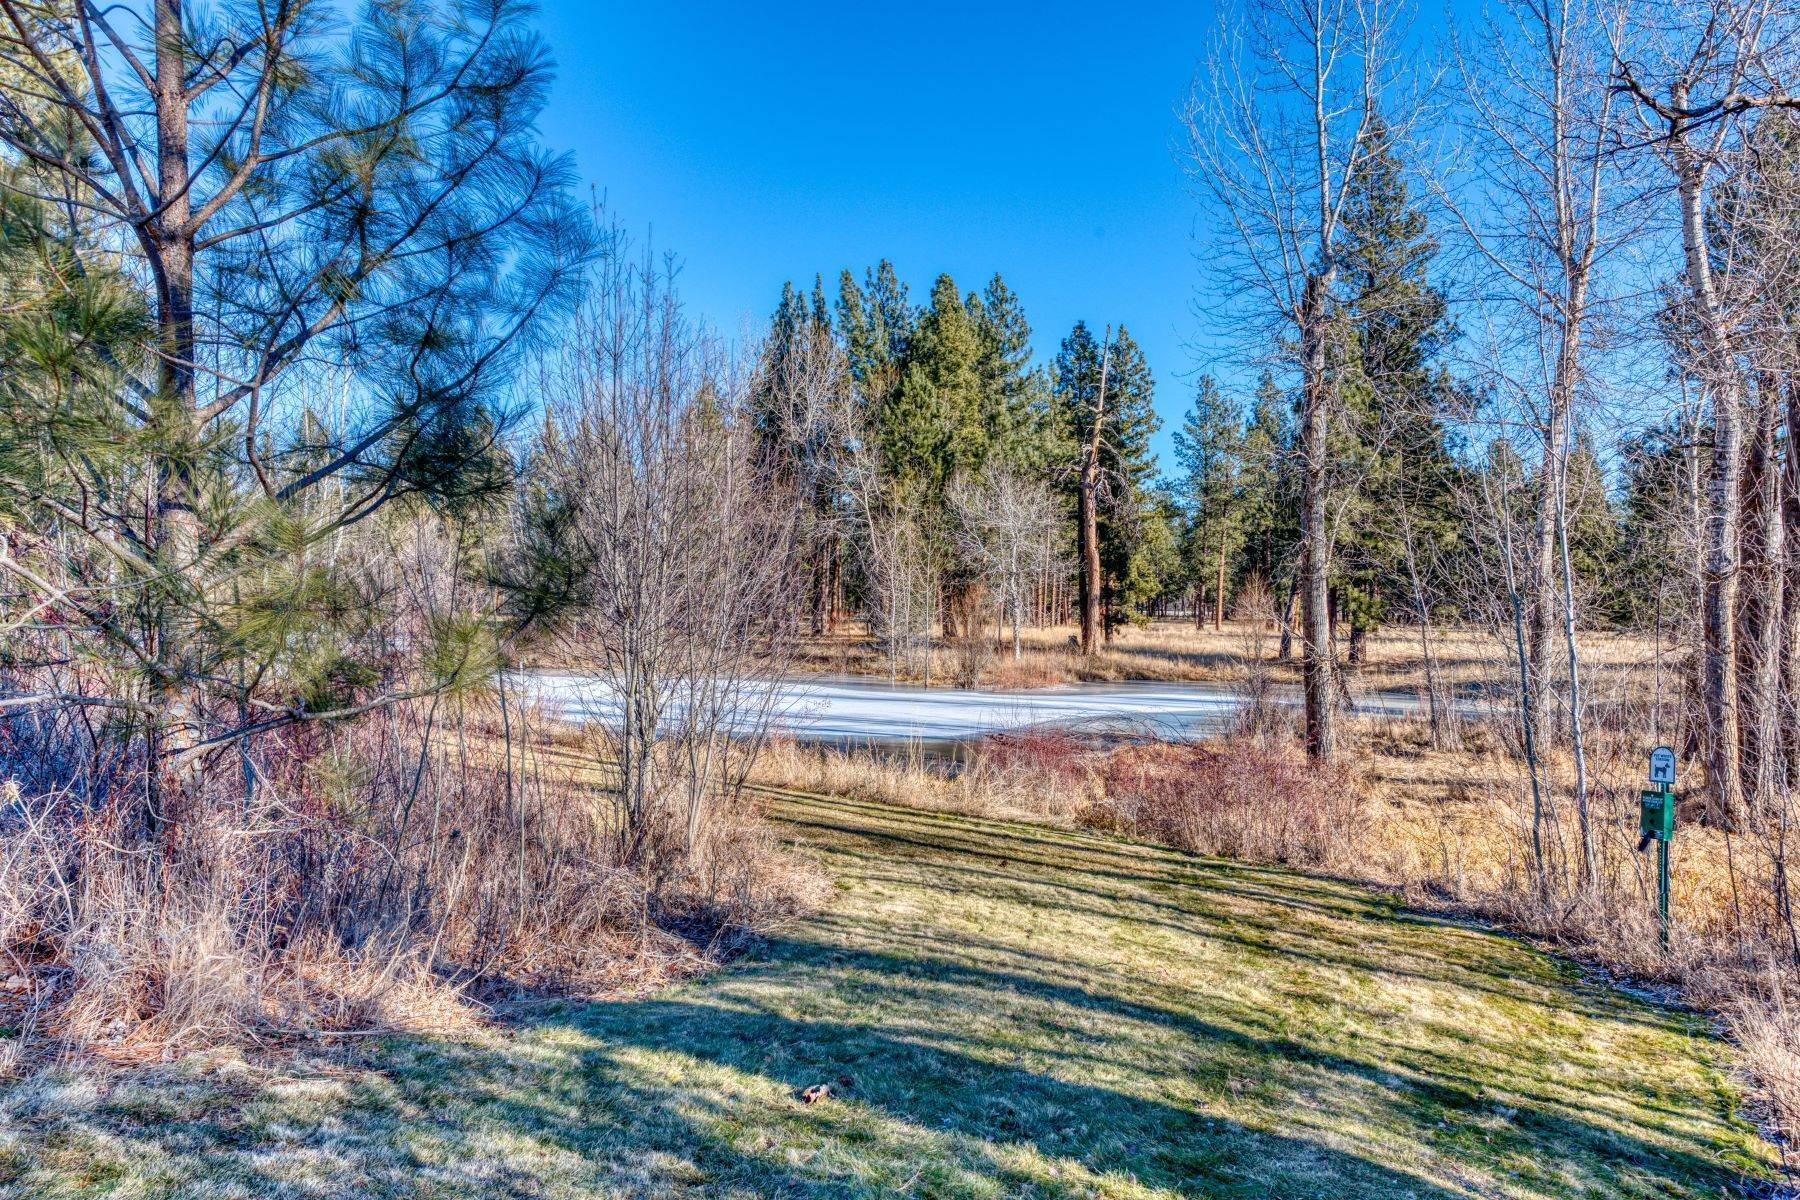 Single Family Homes for Sale at Storybook Montana - Cabin Creek 3377 Us-93 Stevensville, Montana 59870 United States